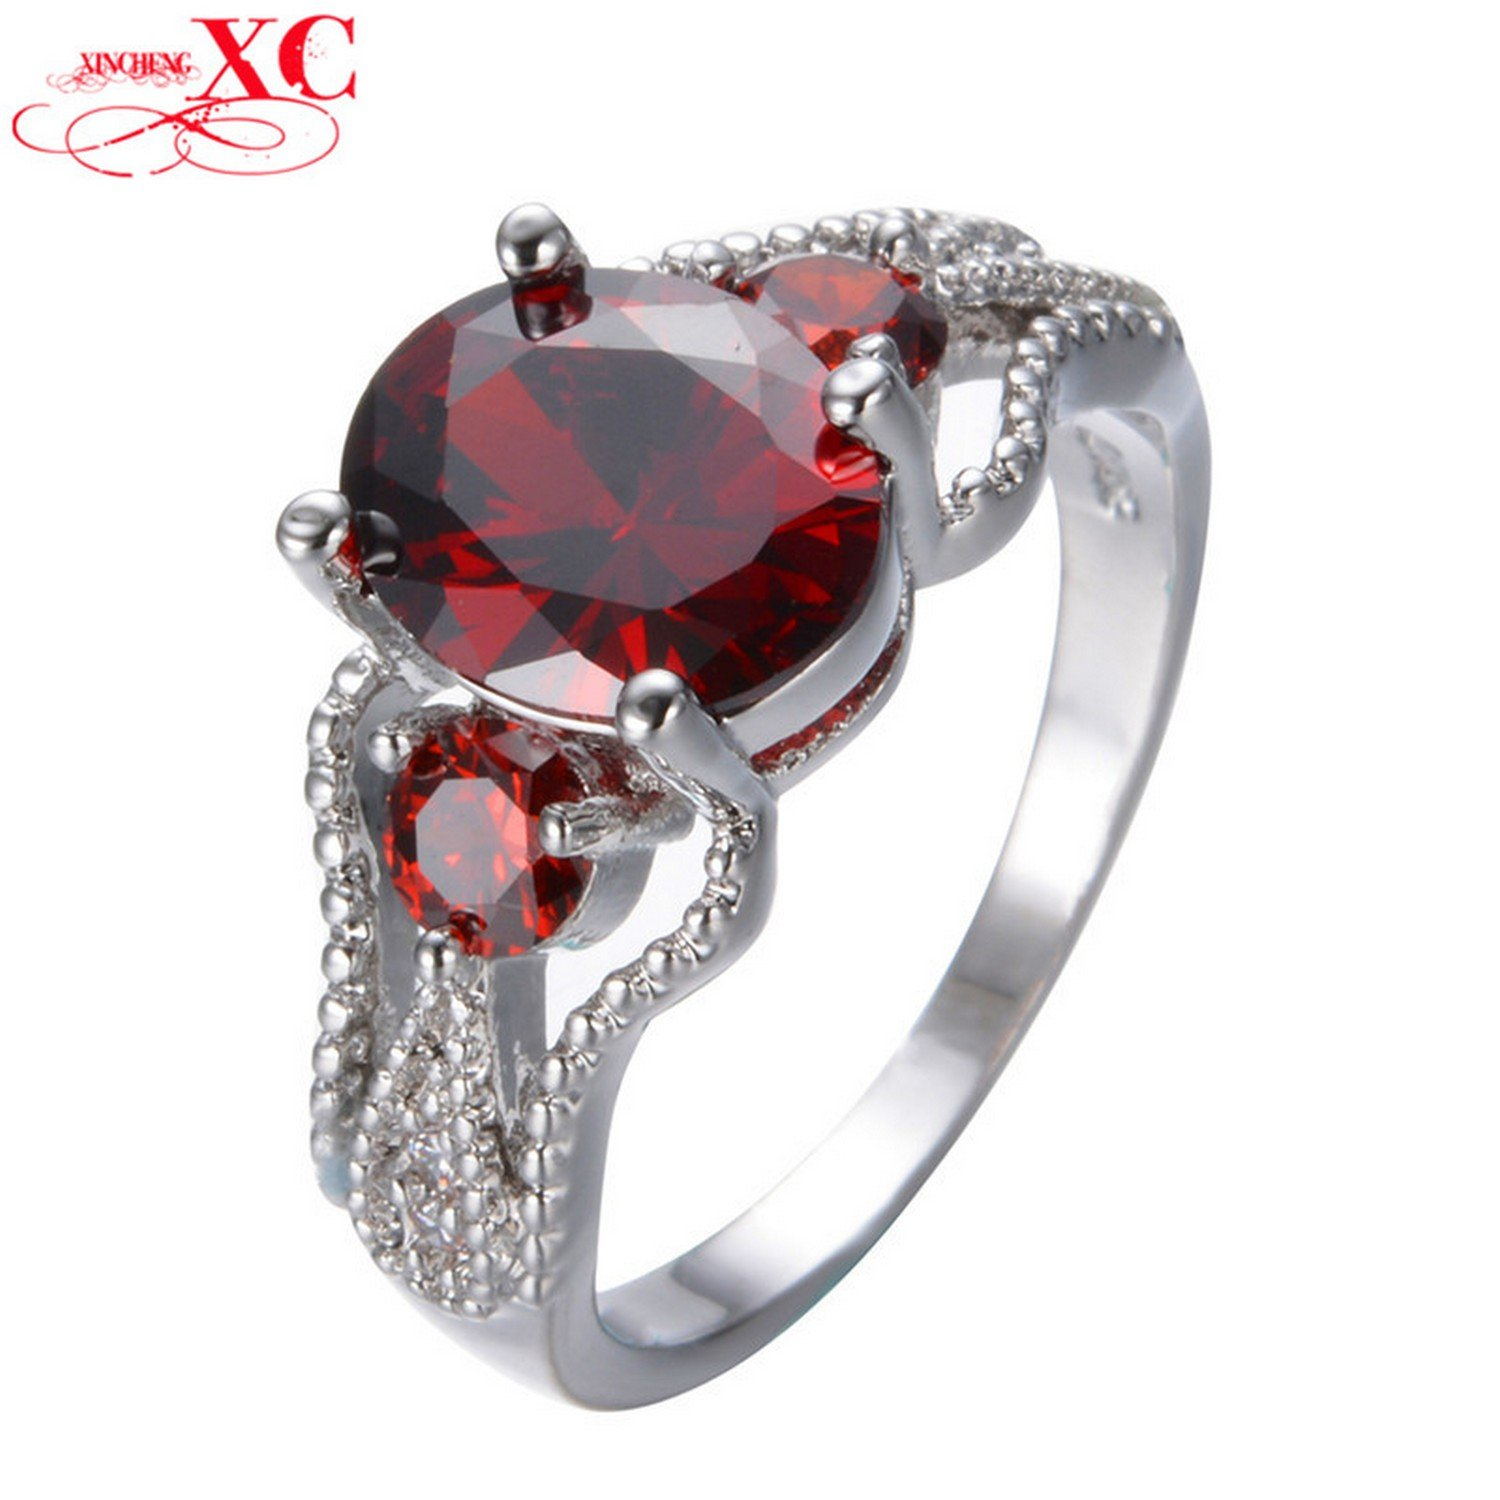 Dudee Jewelry Ruby Jewelry Red Ring White Gold Filled CZ Stone Ring Bohemian Engagement Anel RW1298